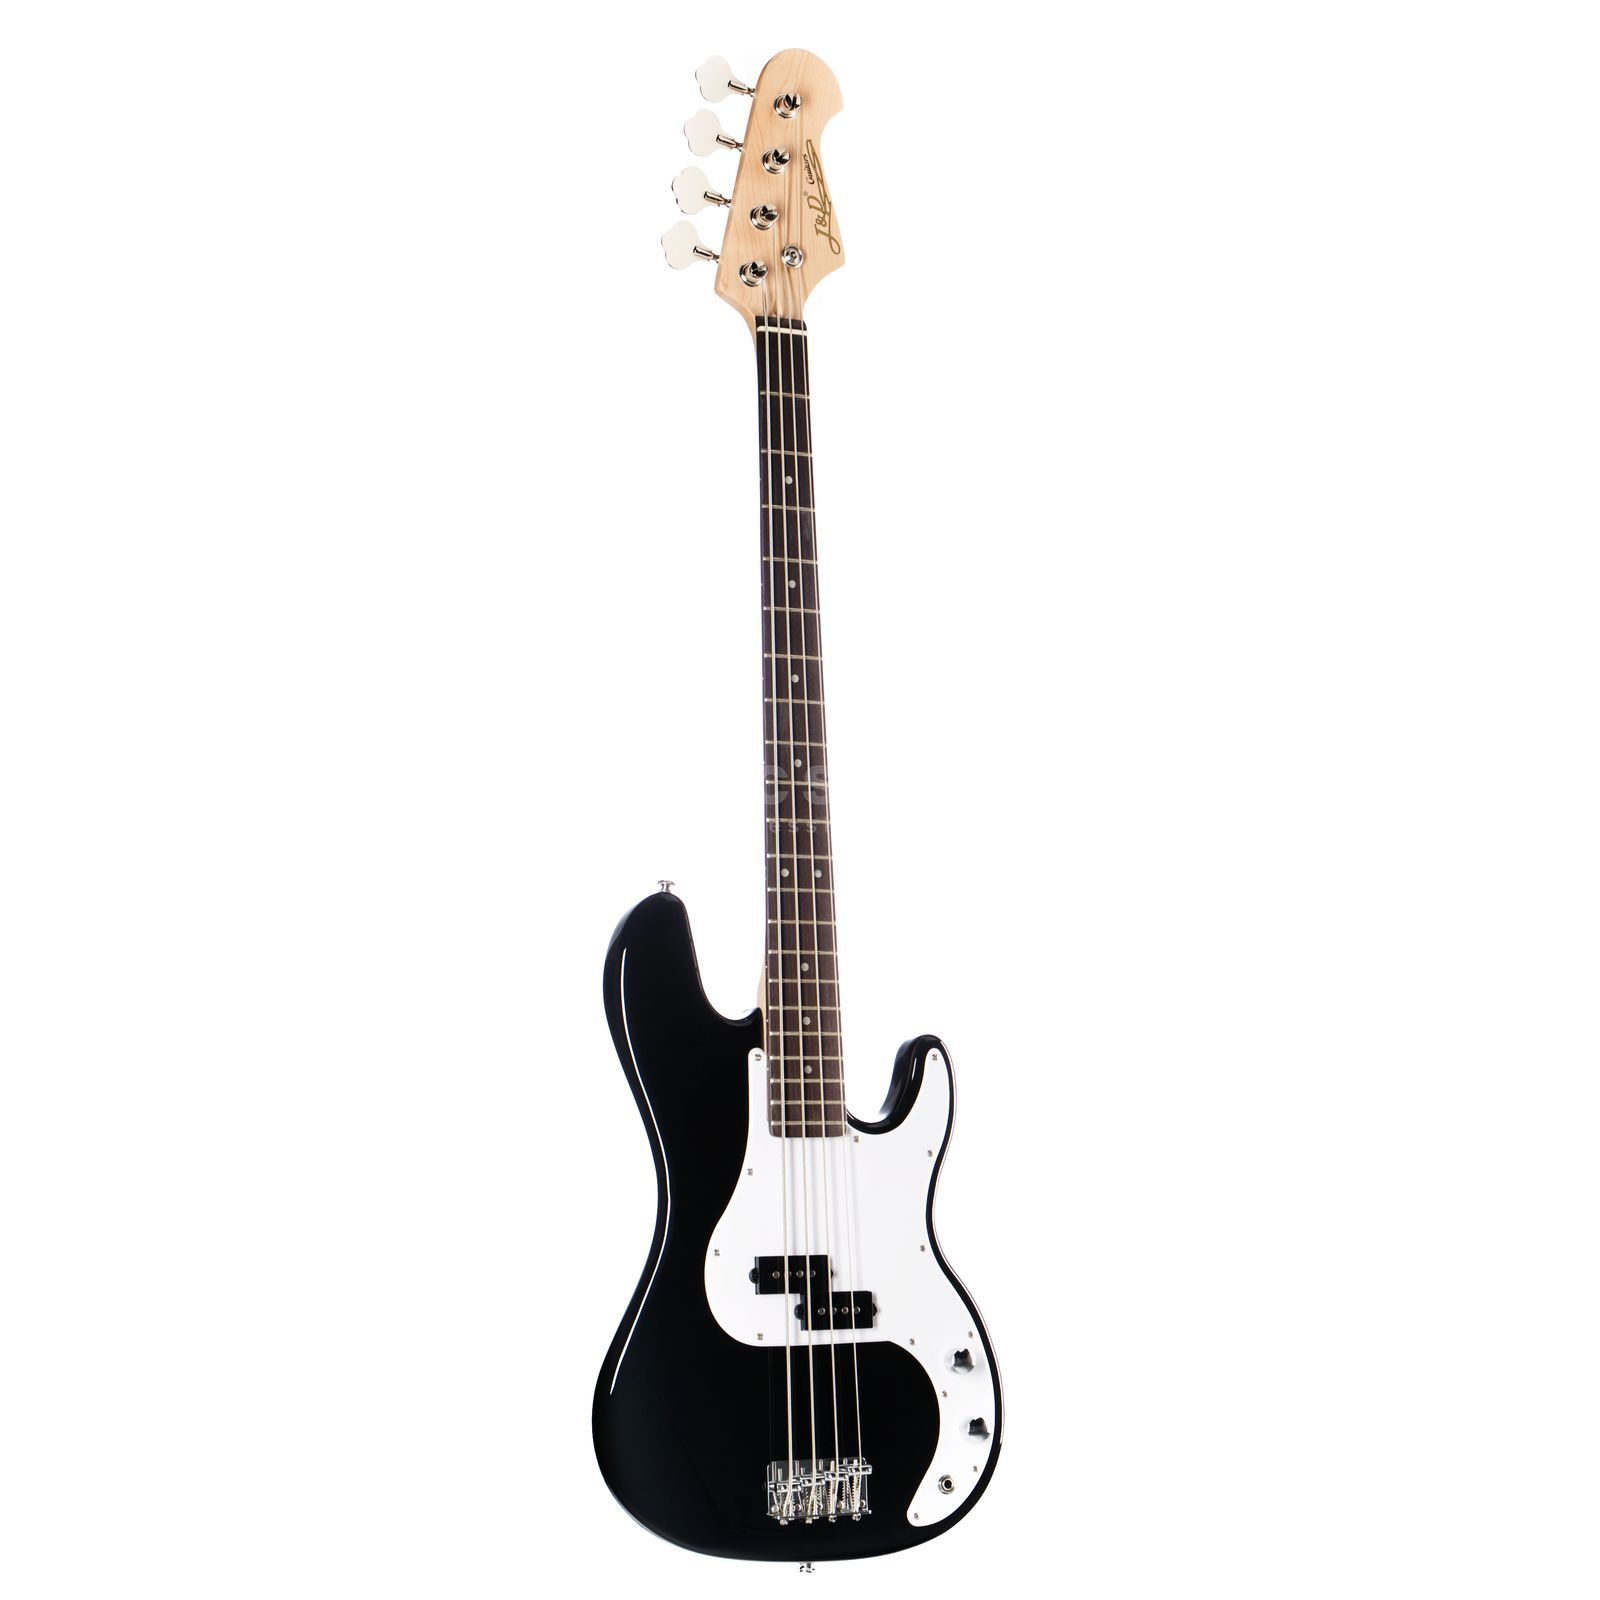 Jack & Danny Bass guitar YC-PB BK 4-String Black Highgloss Product Image